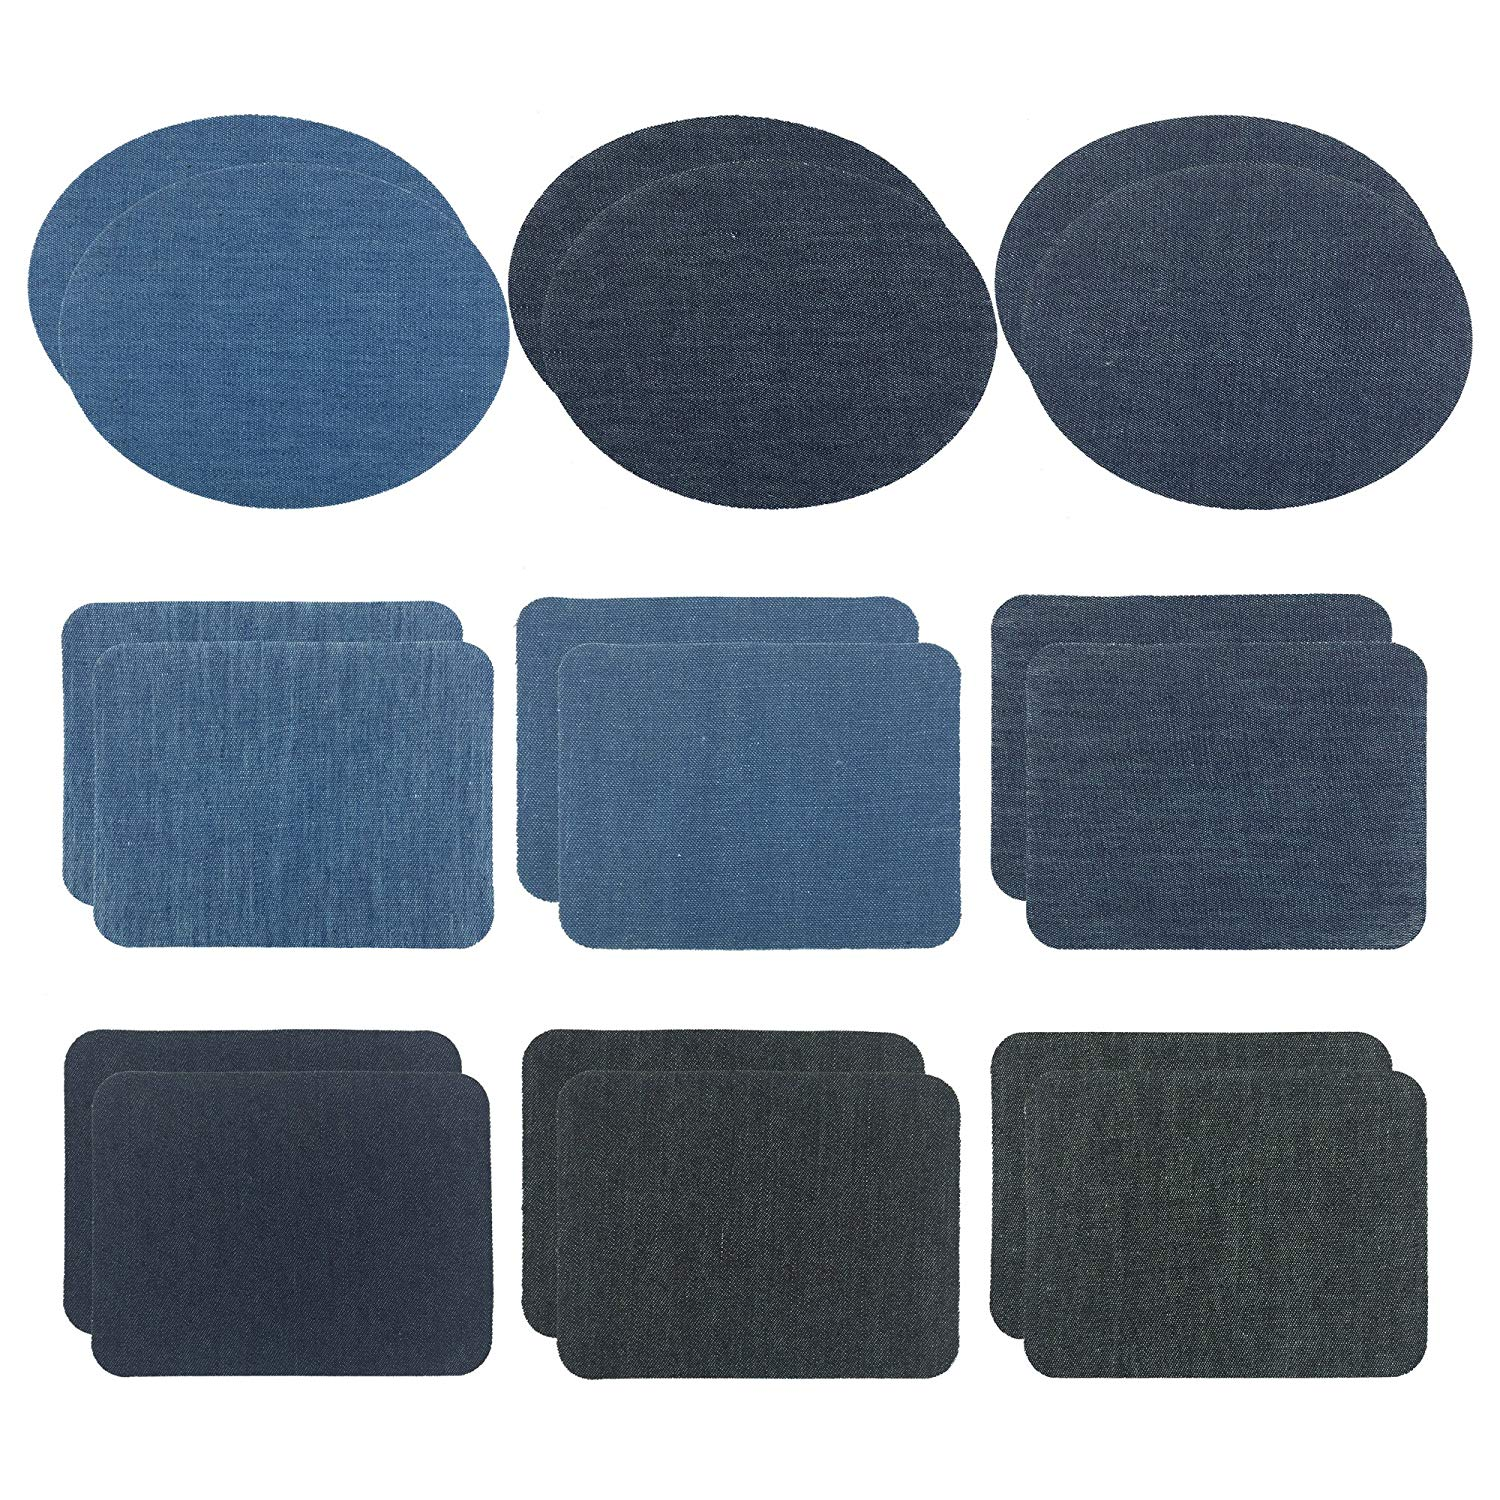 Wartoon 6 Colors 18 Pieces Iron On Patches Iron On Denim Cotton Patches Iron-On Repair Kit, 2 Size